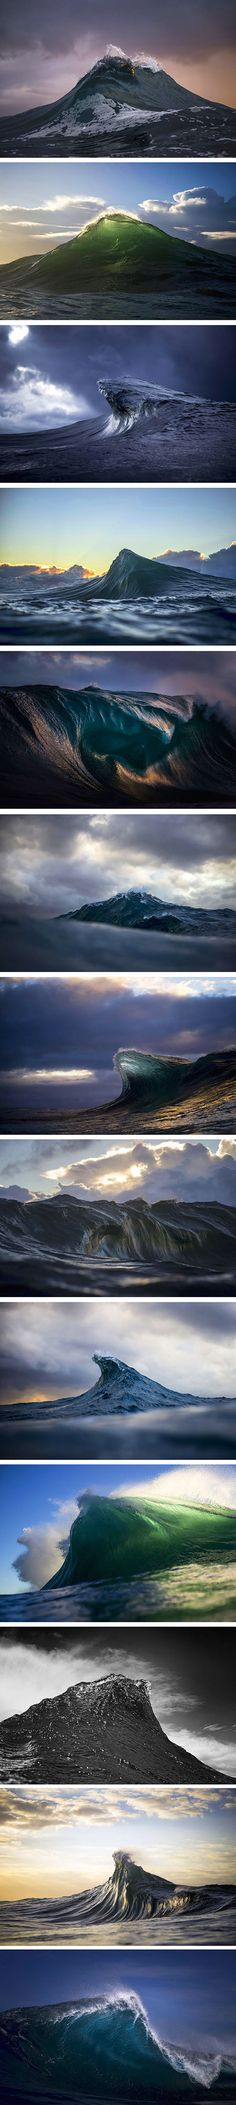 Photographer Captures Ocean Waves at Perfect Moment to Make Them Look Like Liquid Mountains